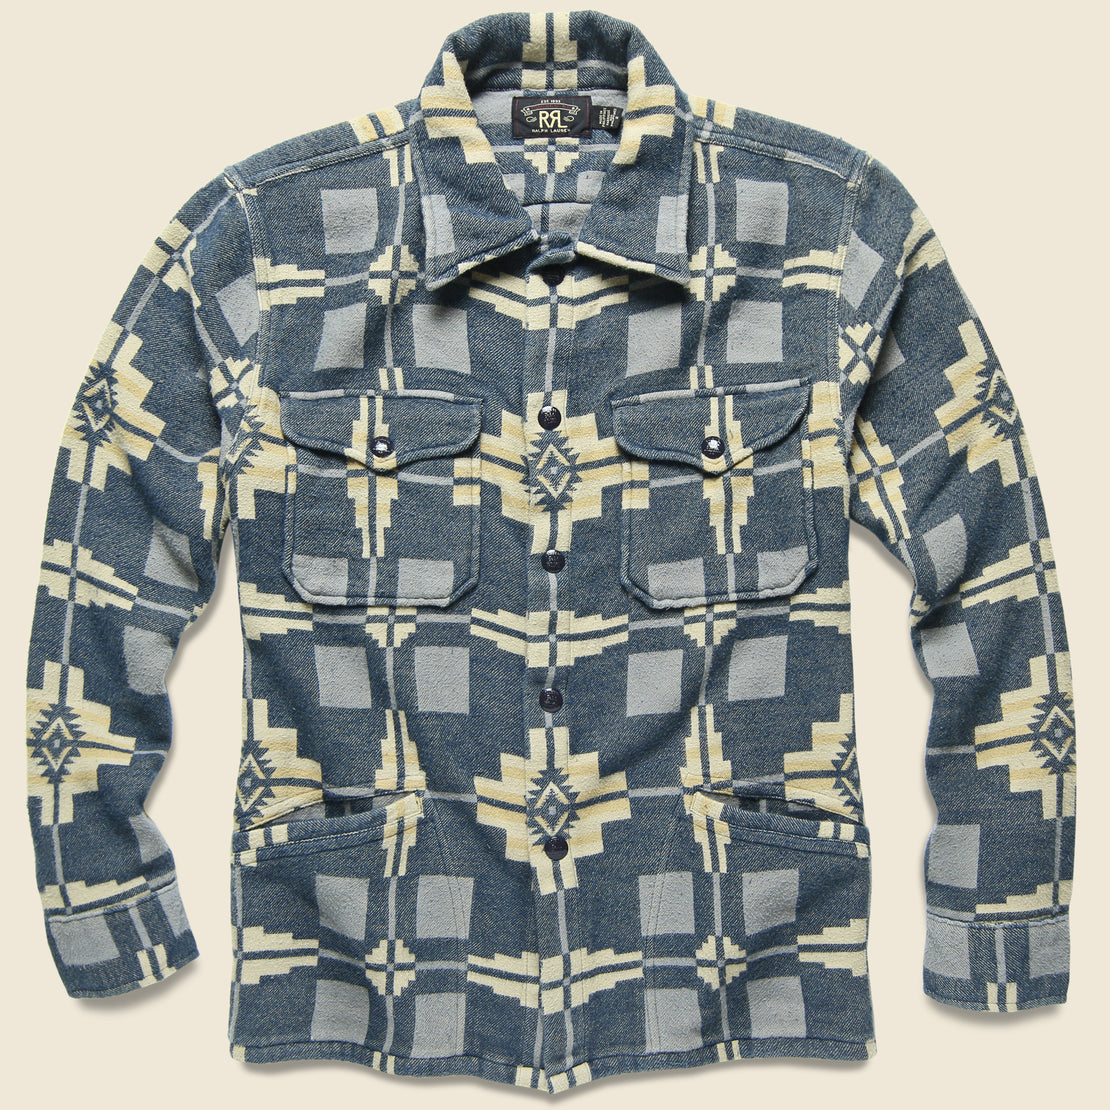 RRL Black Bear Jacquard Overshirt - Blue/Tan